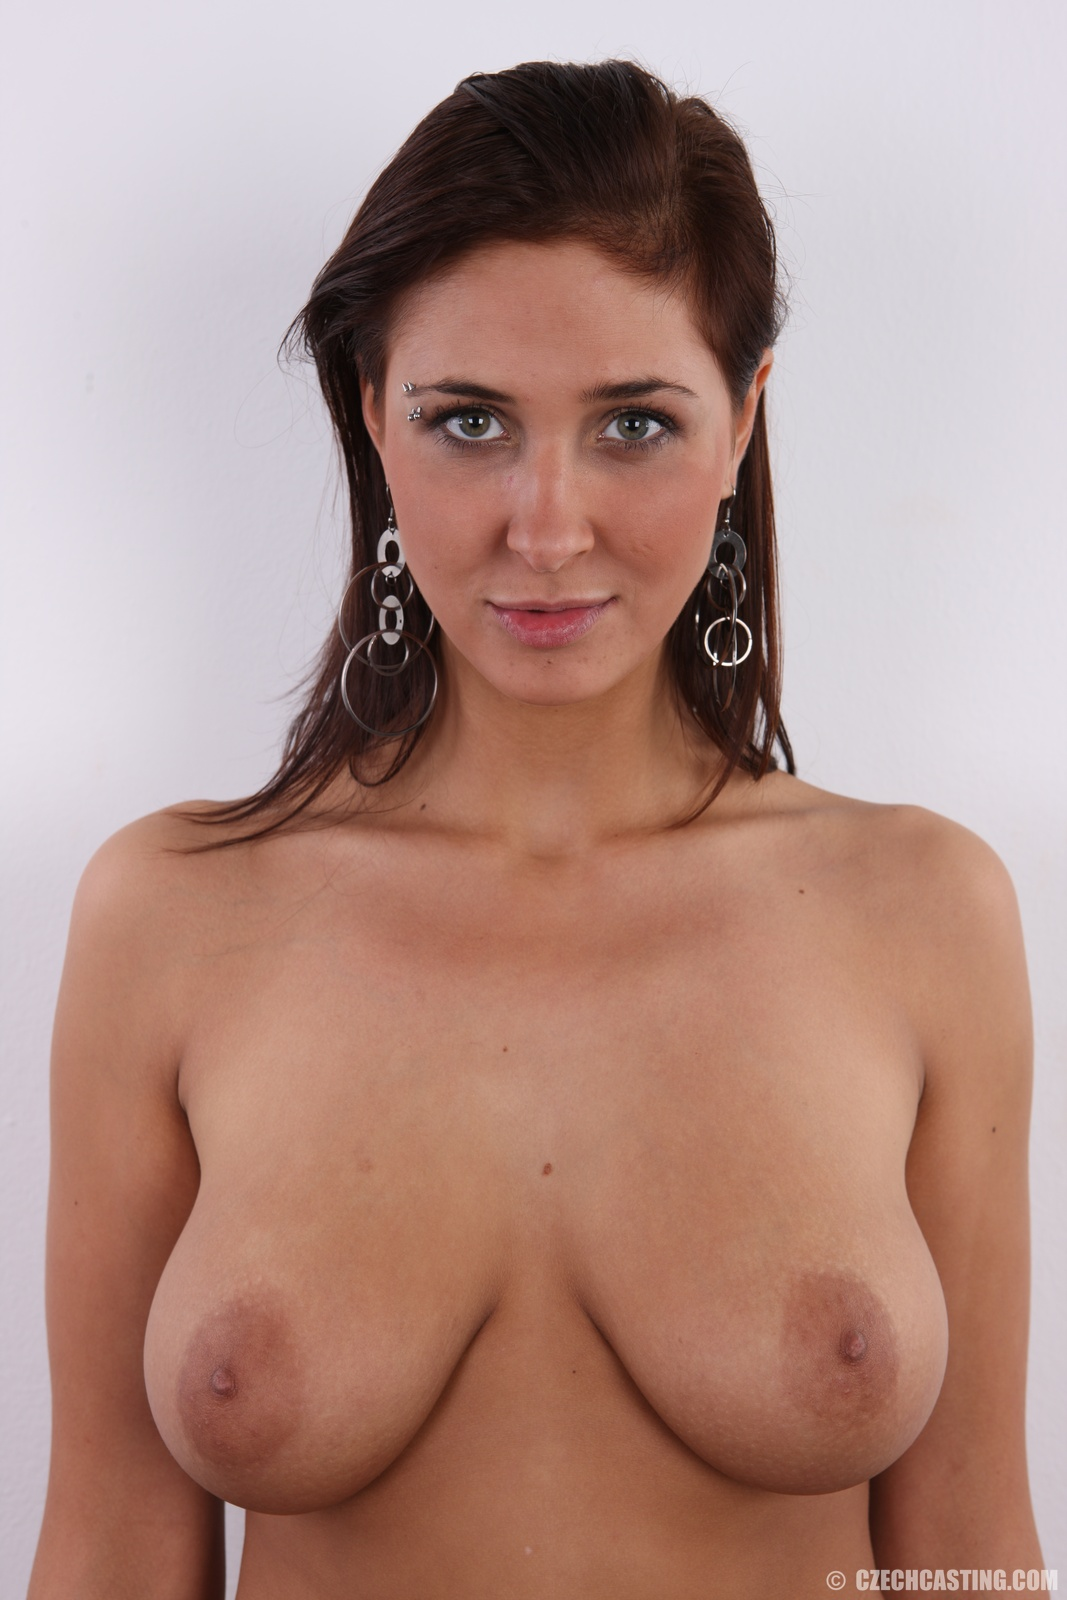 Hot girls with big boobs stripping